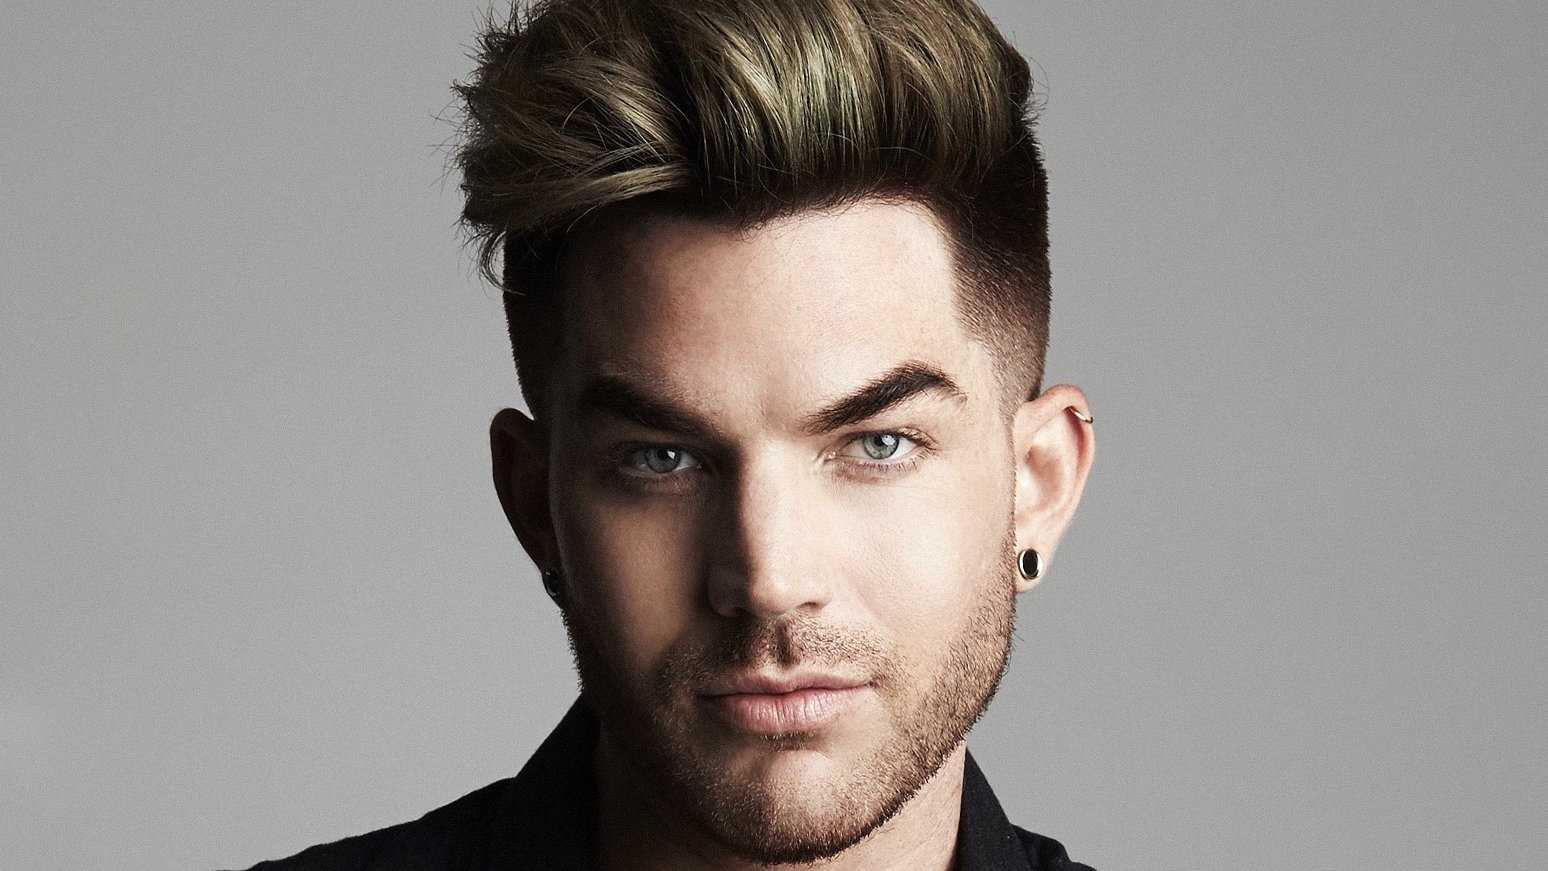 Adam Lambert is an out and proud singer and one of the hottest singers in our humble opinion